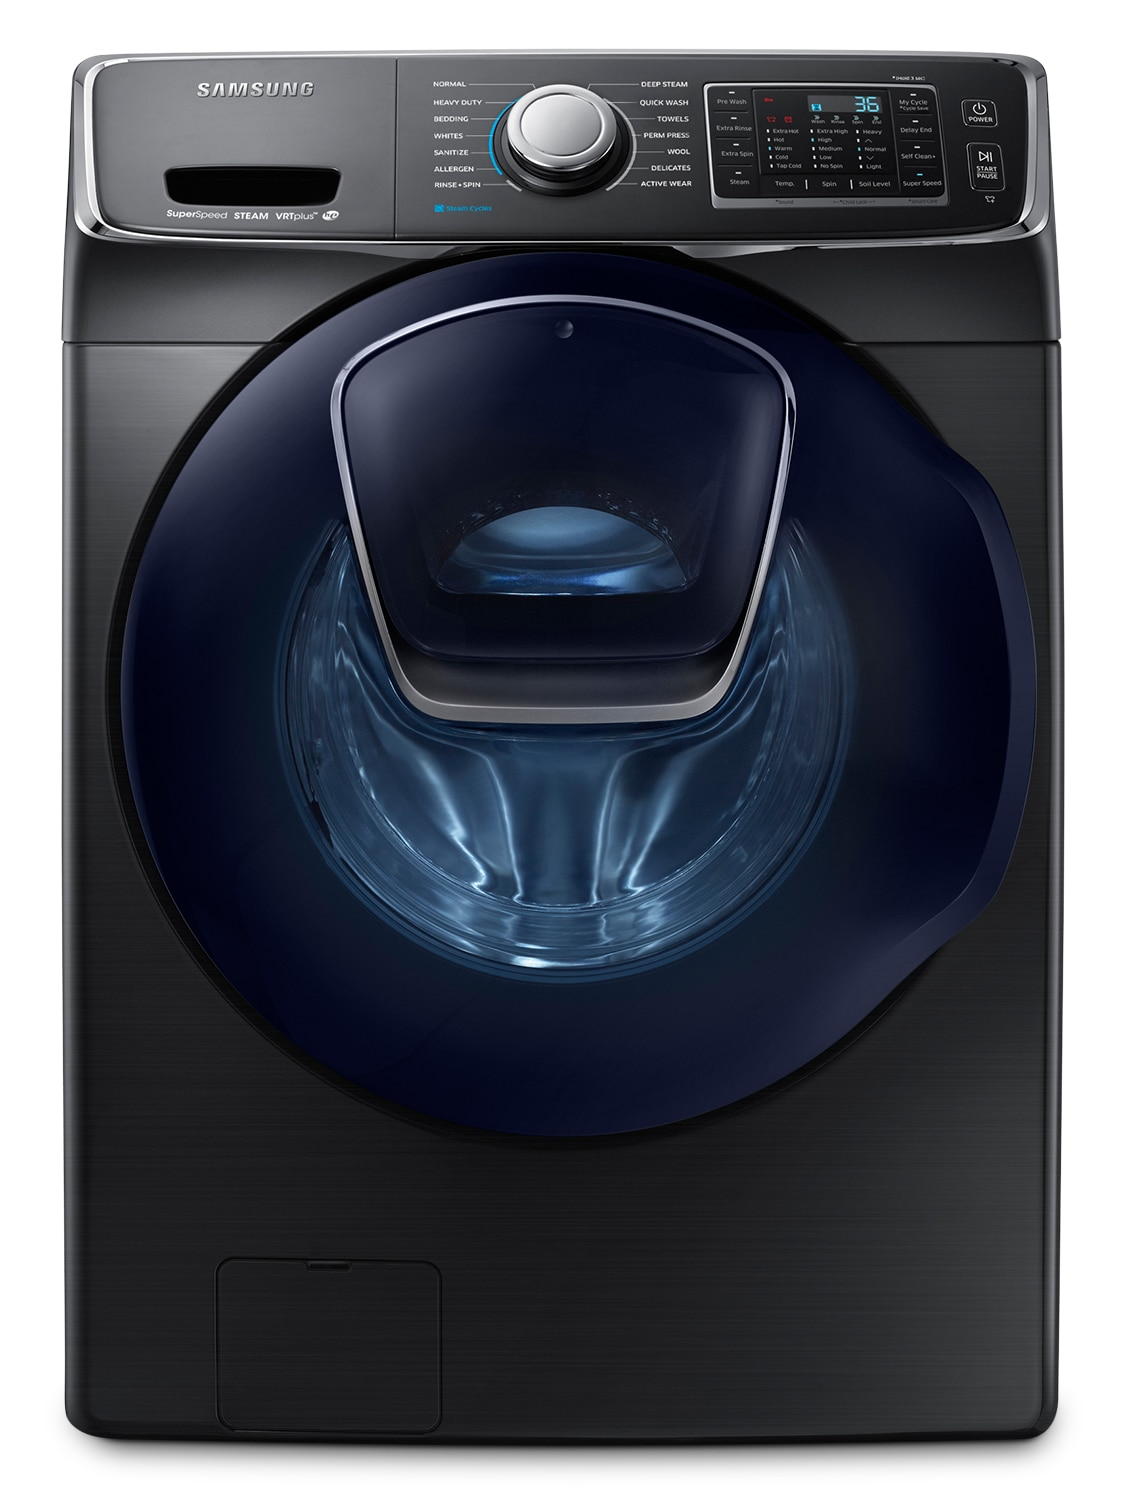 Washers and Dryers - Samsung 5.2 Cu. Ft. Front-Load Washer – Black Stainless Steel WF45K6500AV/A2